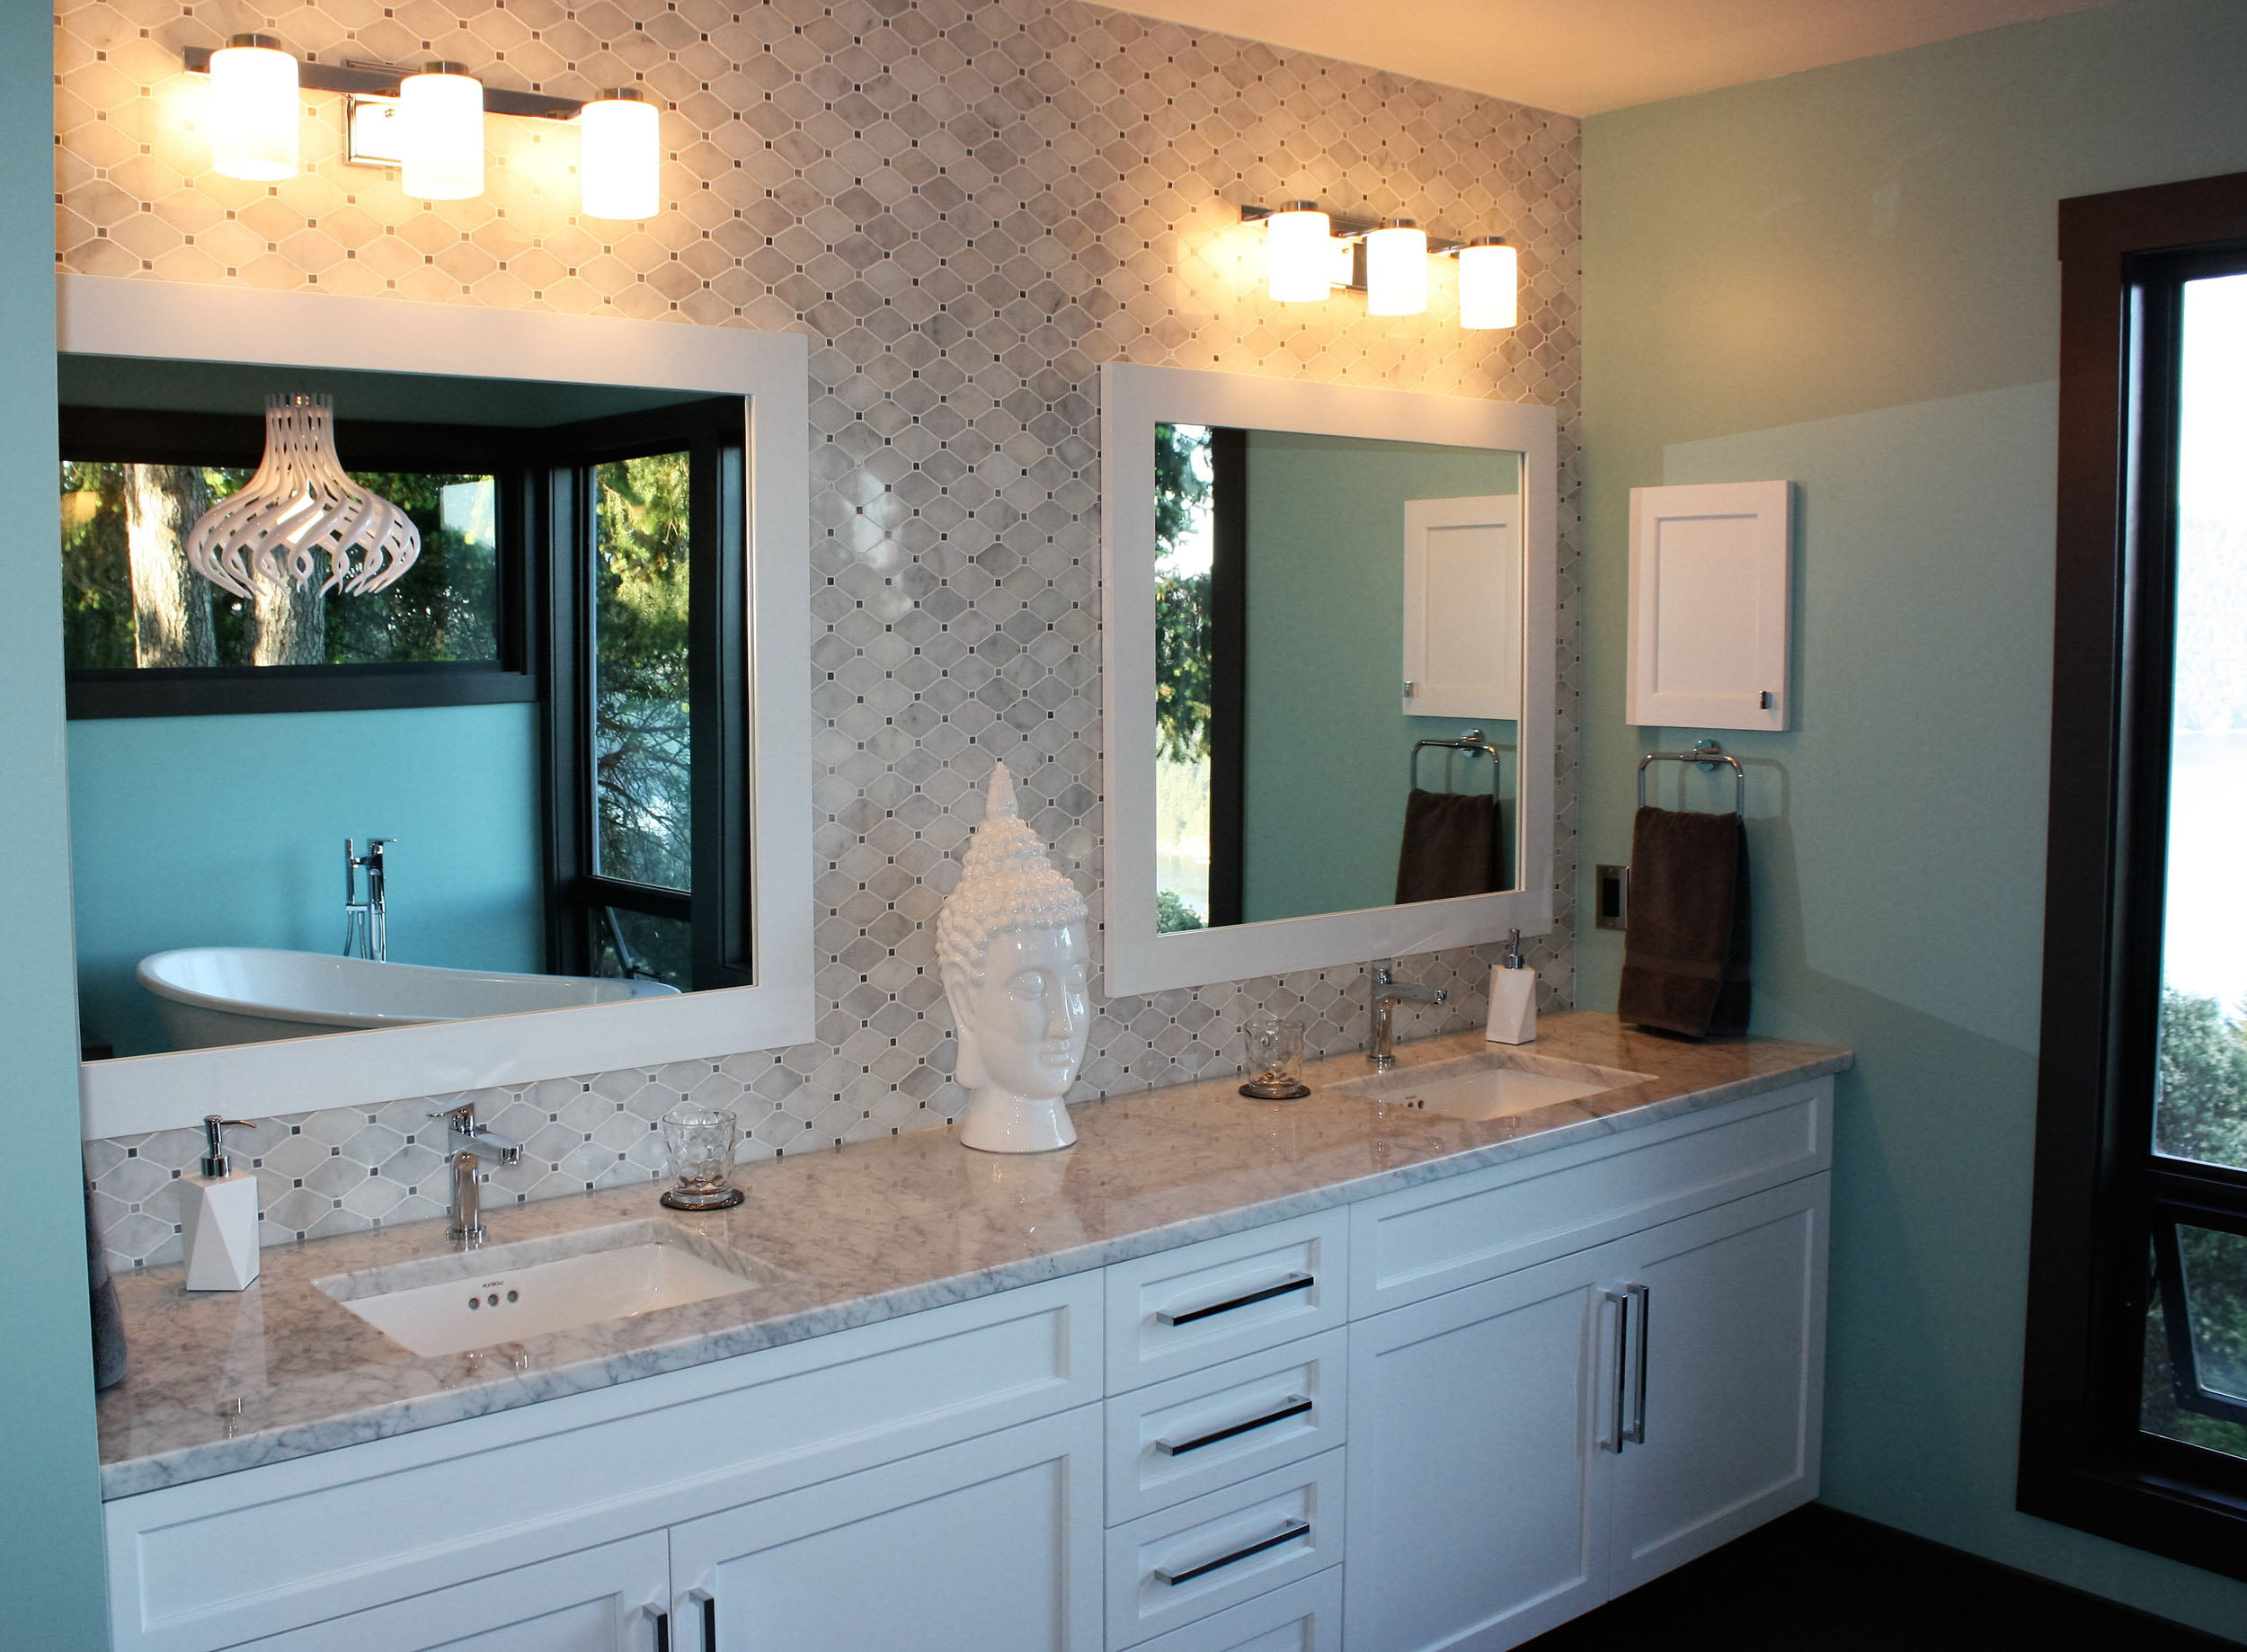 Double Vanity with Mosiac Marble Tile